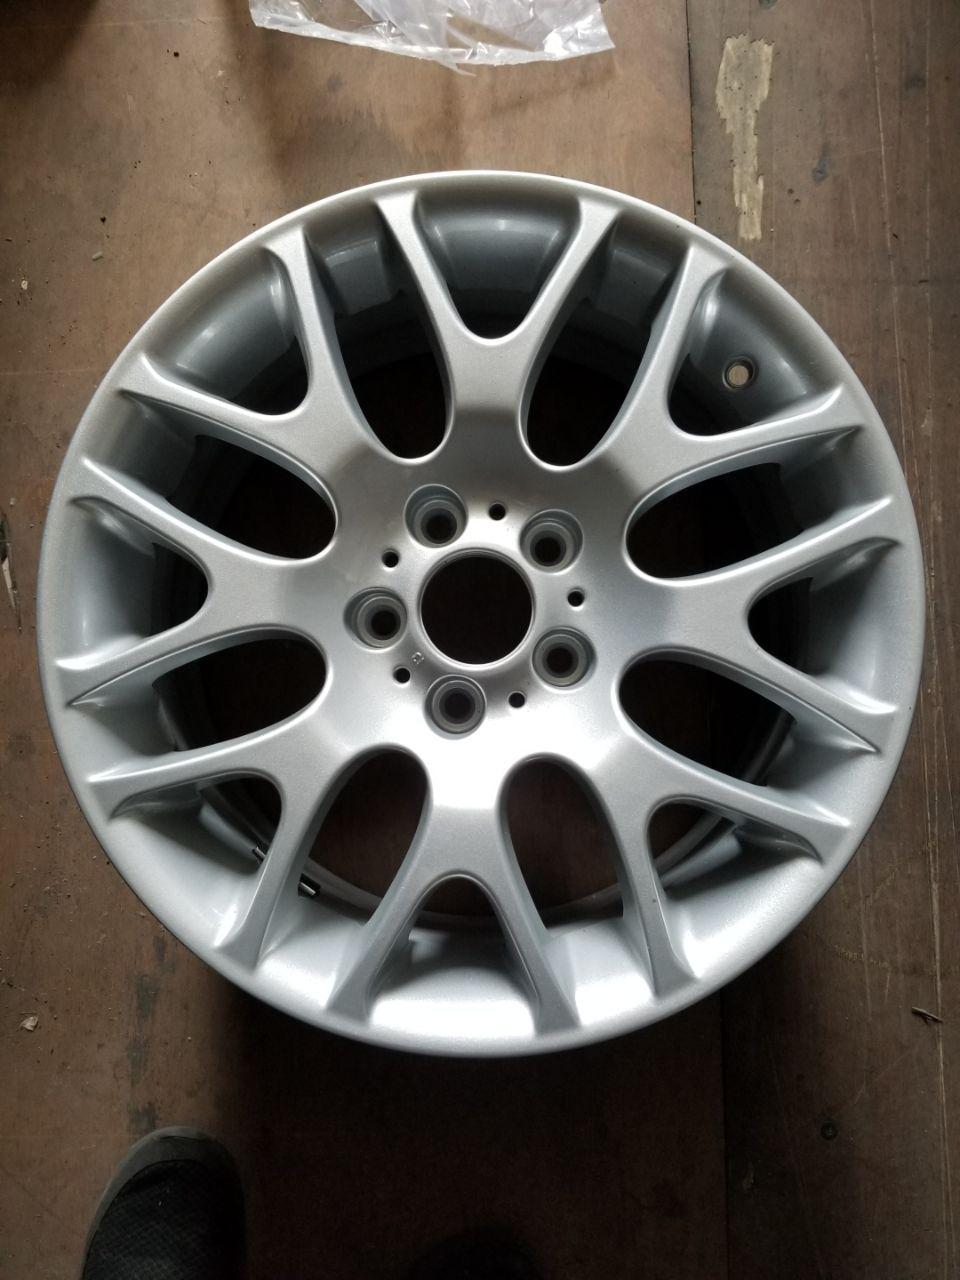 - OEM WHEELS - 2007-2013 BMW 3 SERIES 18x8.5 8 Y SPOKE Hollander #59461 /  USED